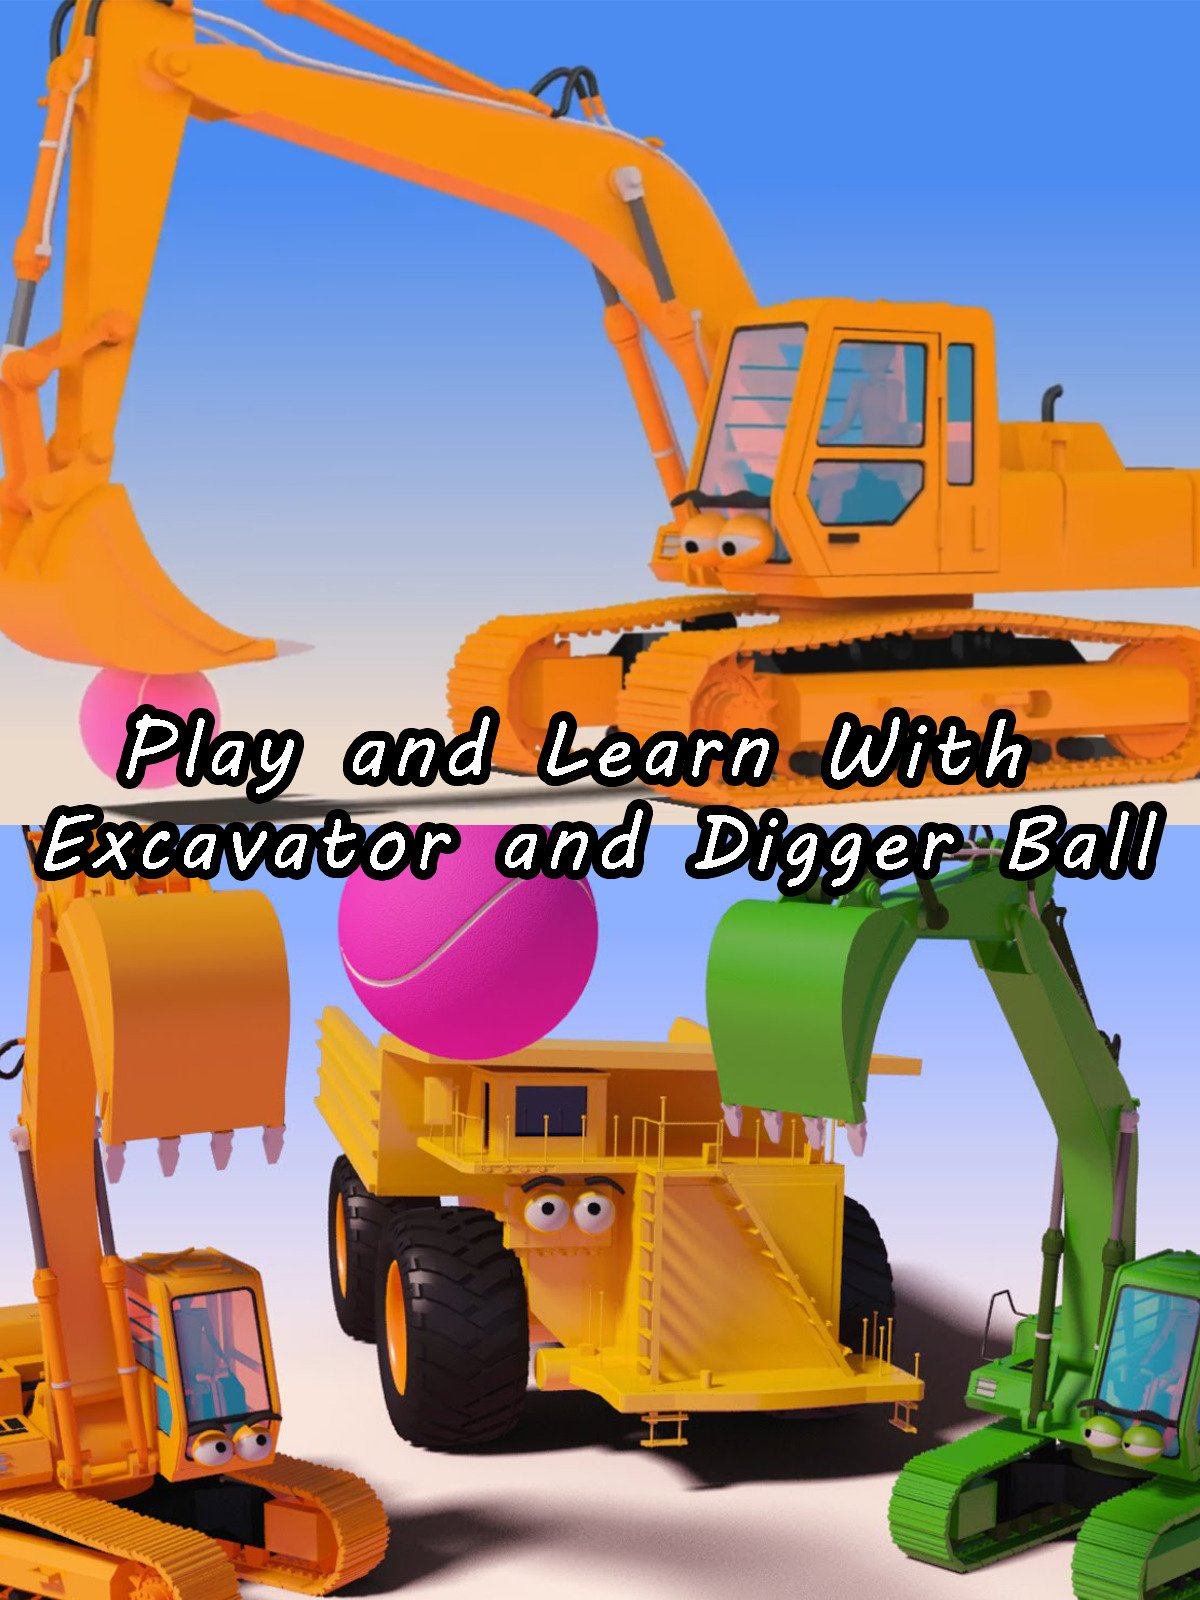 Play and Learn With Excavator and Digger Ball on Amazon Prime Video UK